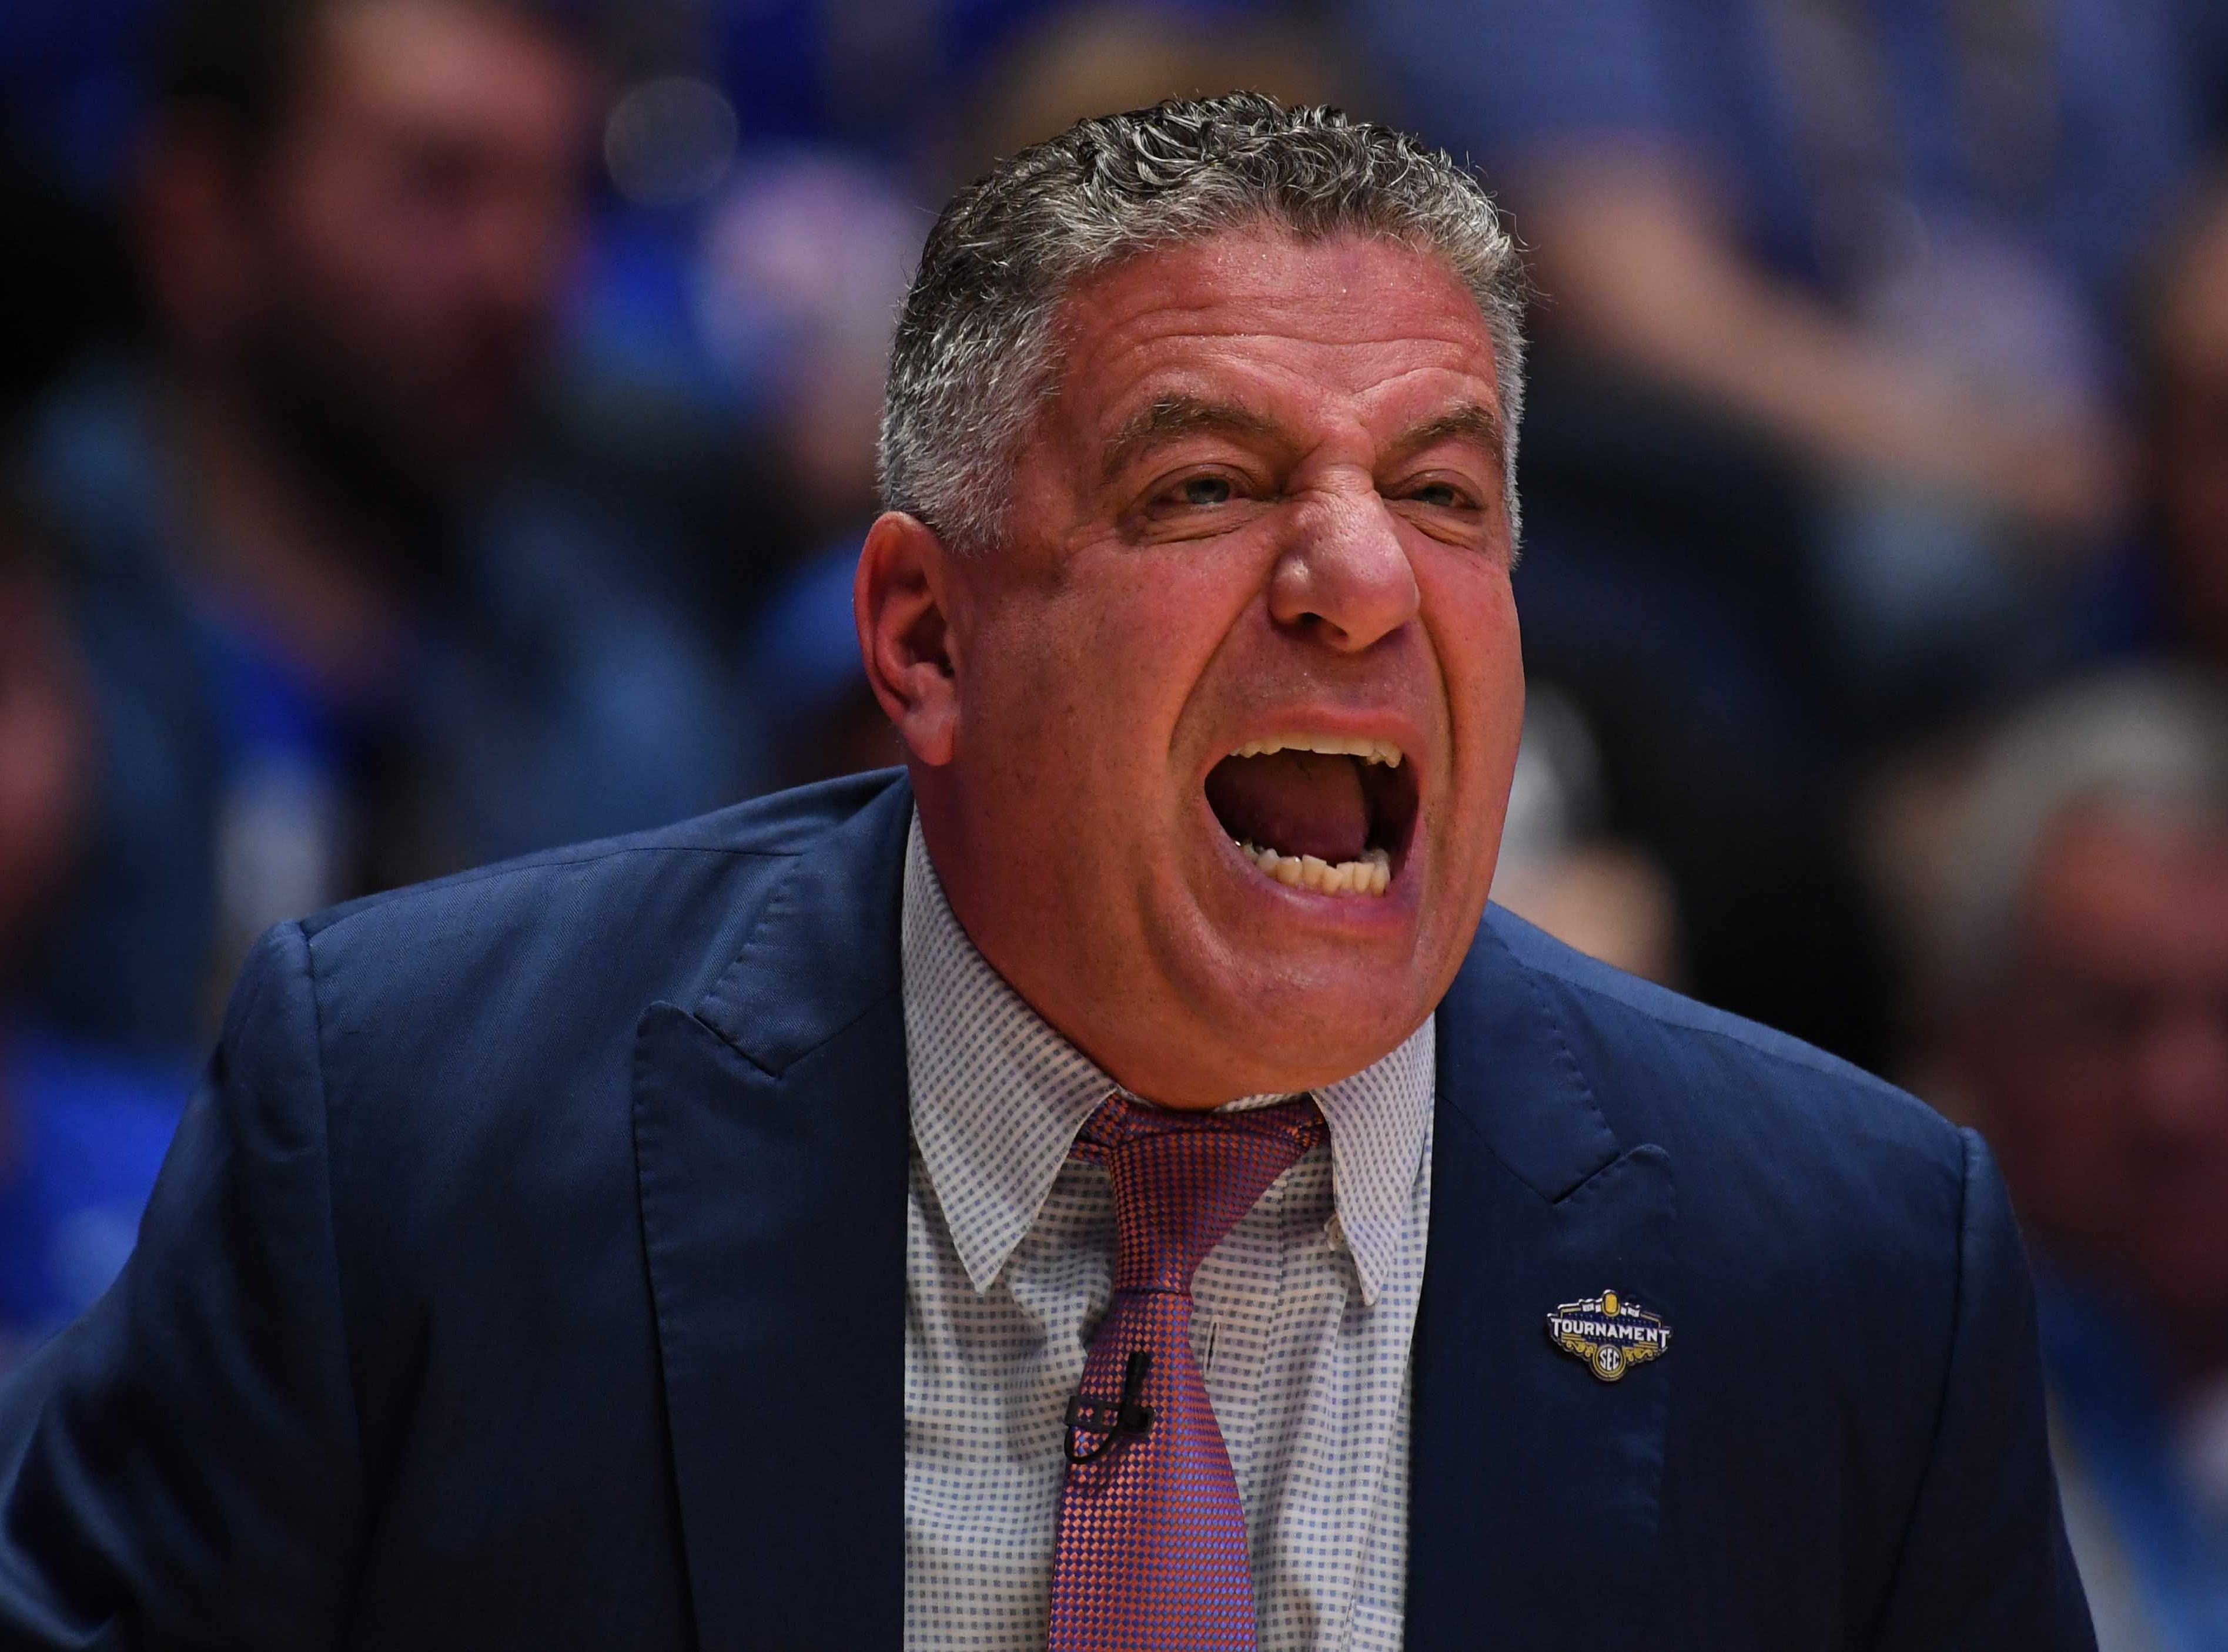 Mar 15, 2019; Nashville, TN, USA; Auburn Tigers head coach Bruce Pearl against the South Carolina Gamecocks during the first half of the SEC conference tournament at Bridgestone Arena. Mandatory Credit: Christopher Hanewinckel-USA TODAY Sports